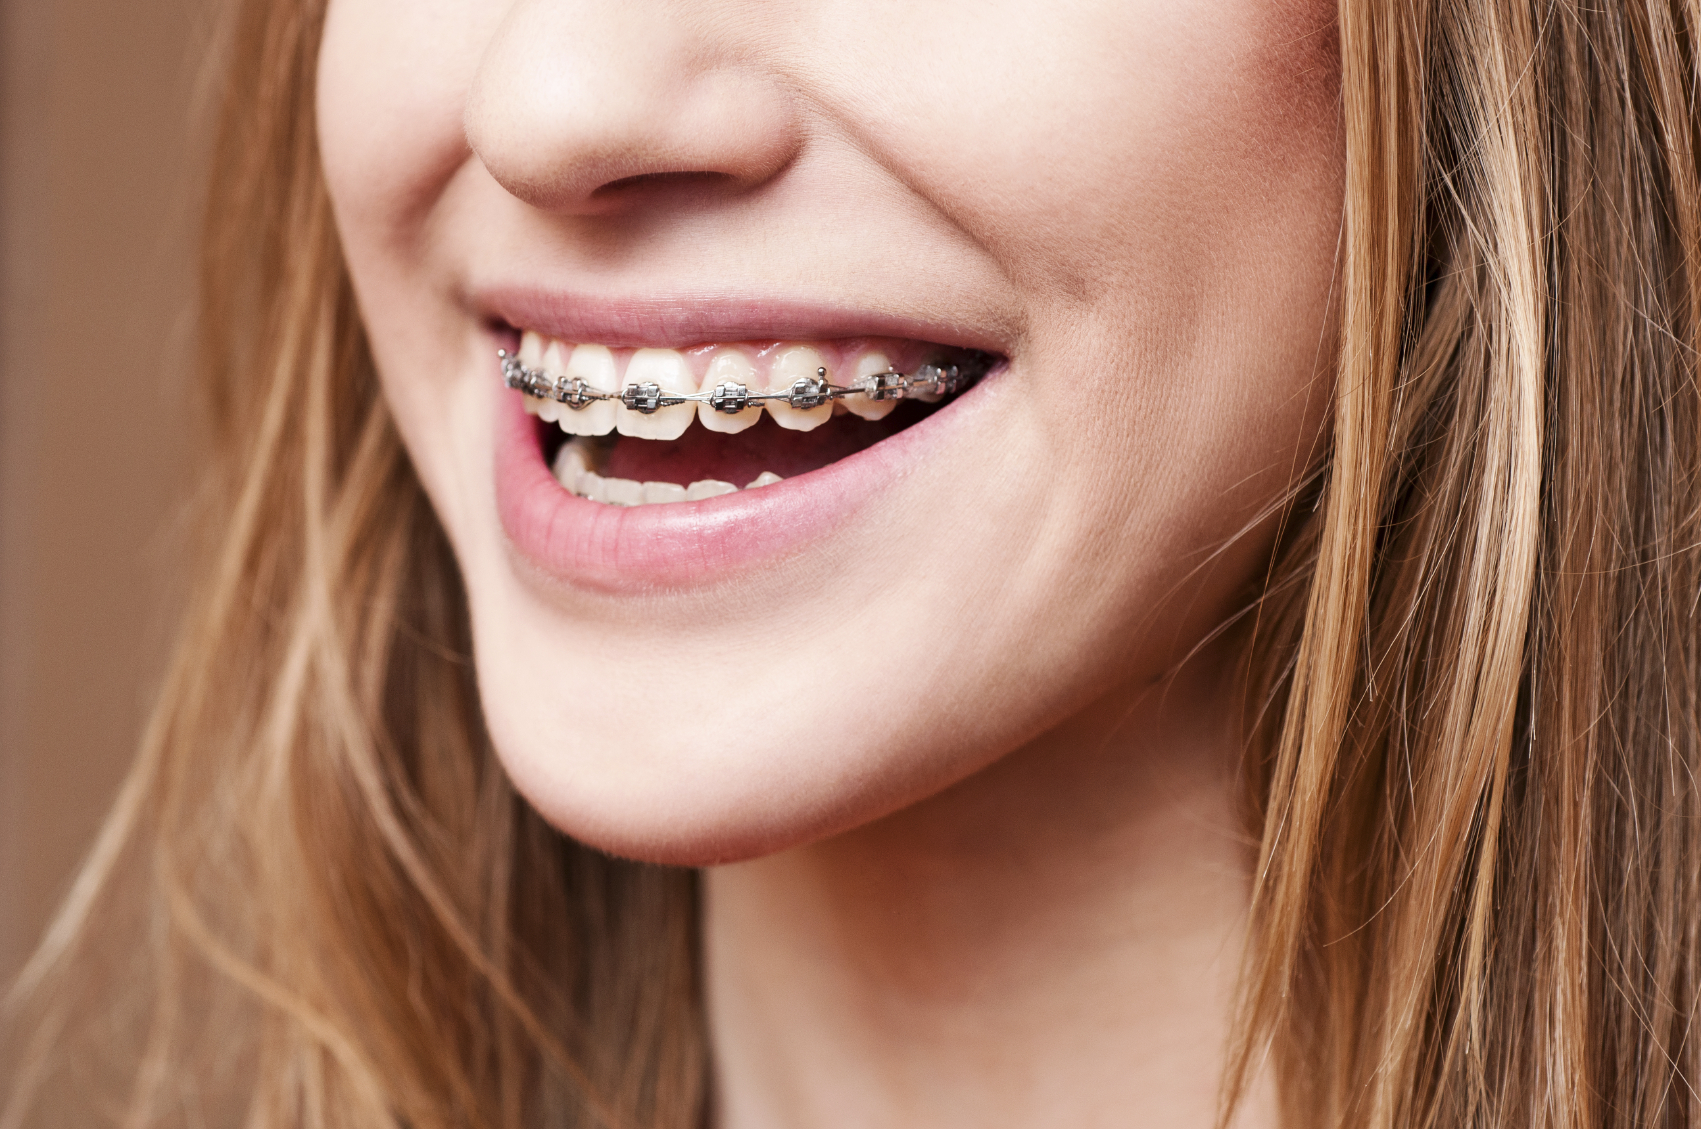 Easy Steps for a Successful Orthodontic Treatment